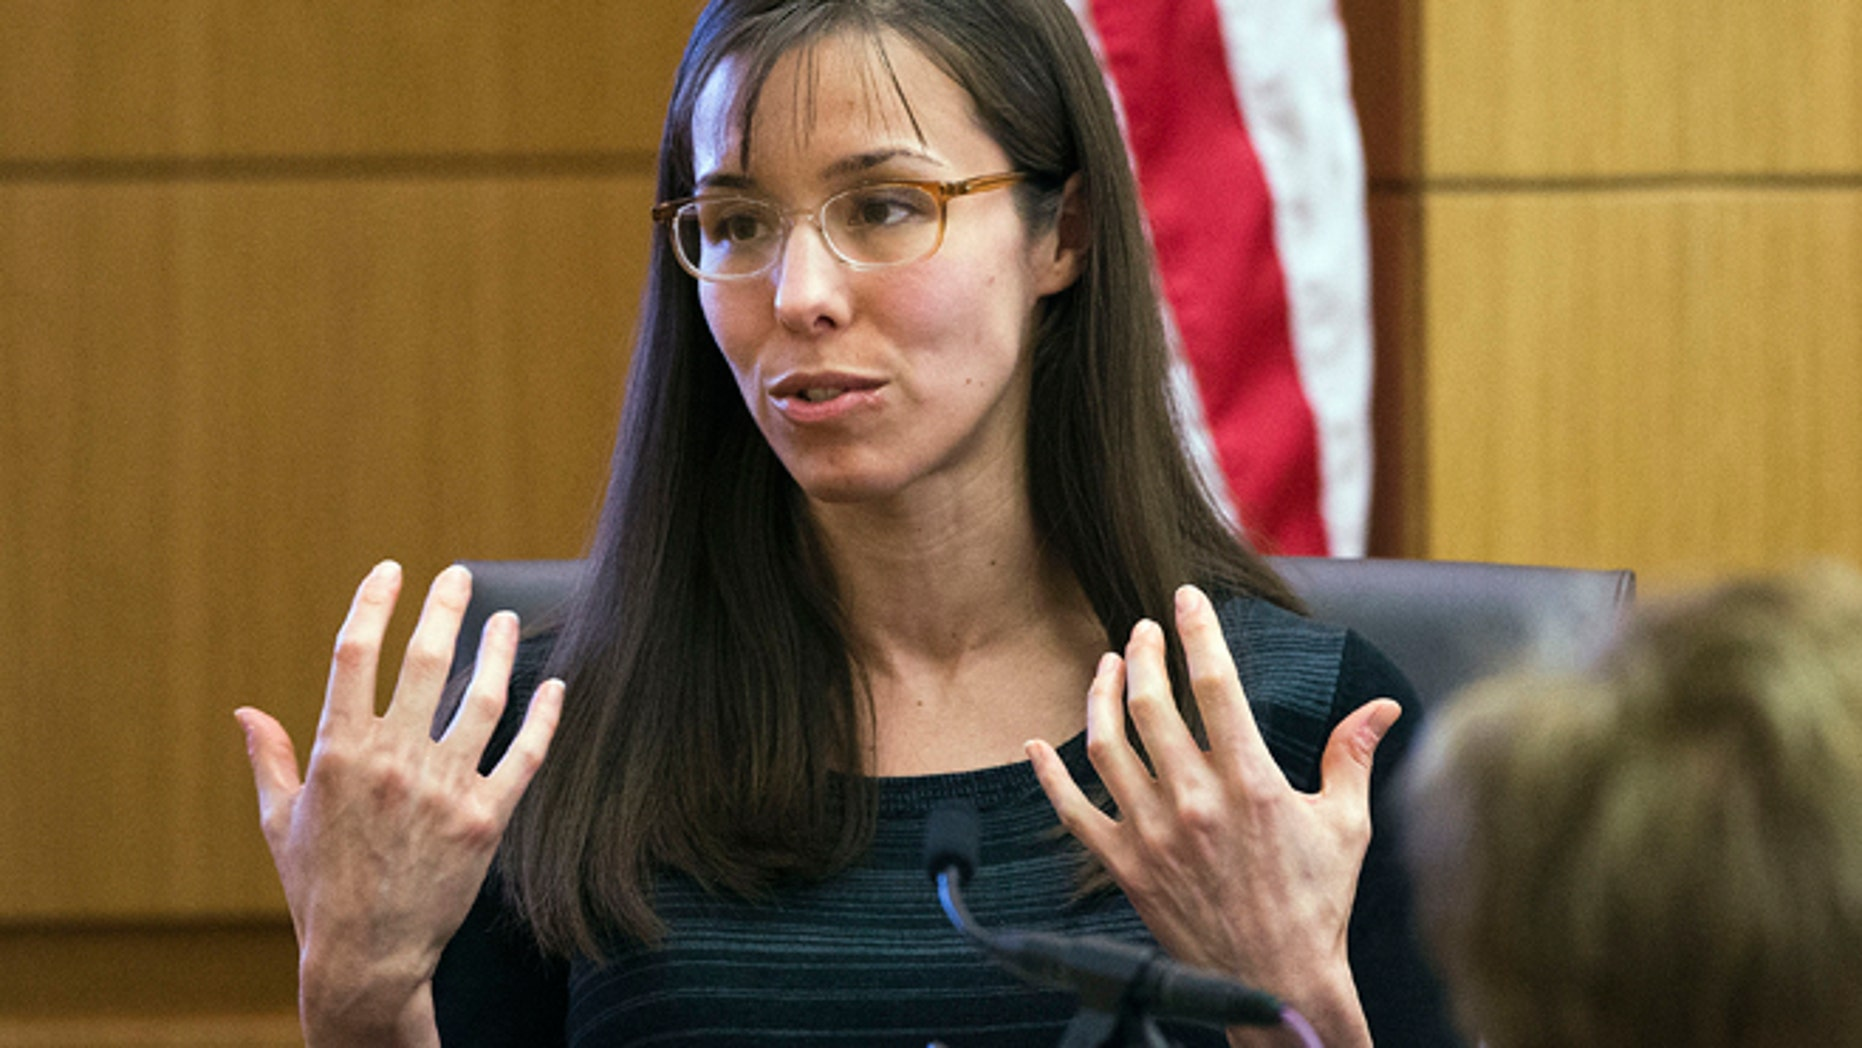 This March 5, 2013 photo shows Jodi Arias gesturing toward the jury, in Maricopa County Superior Court in Phoenix.